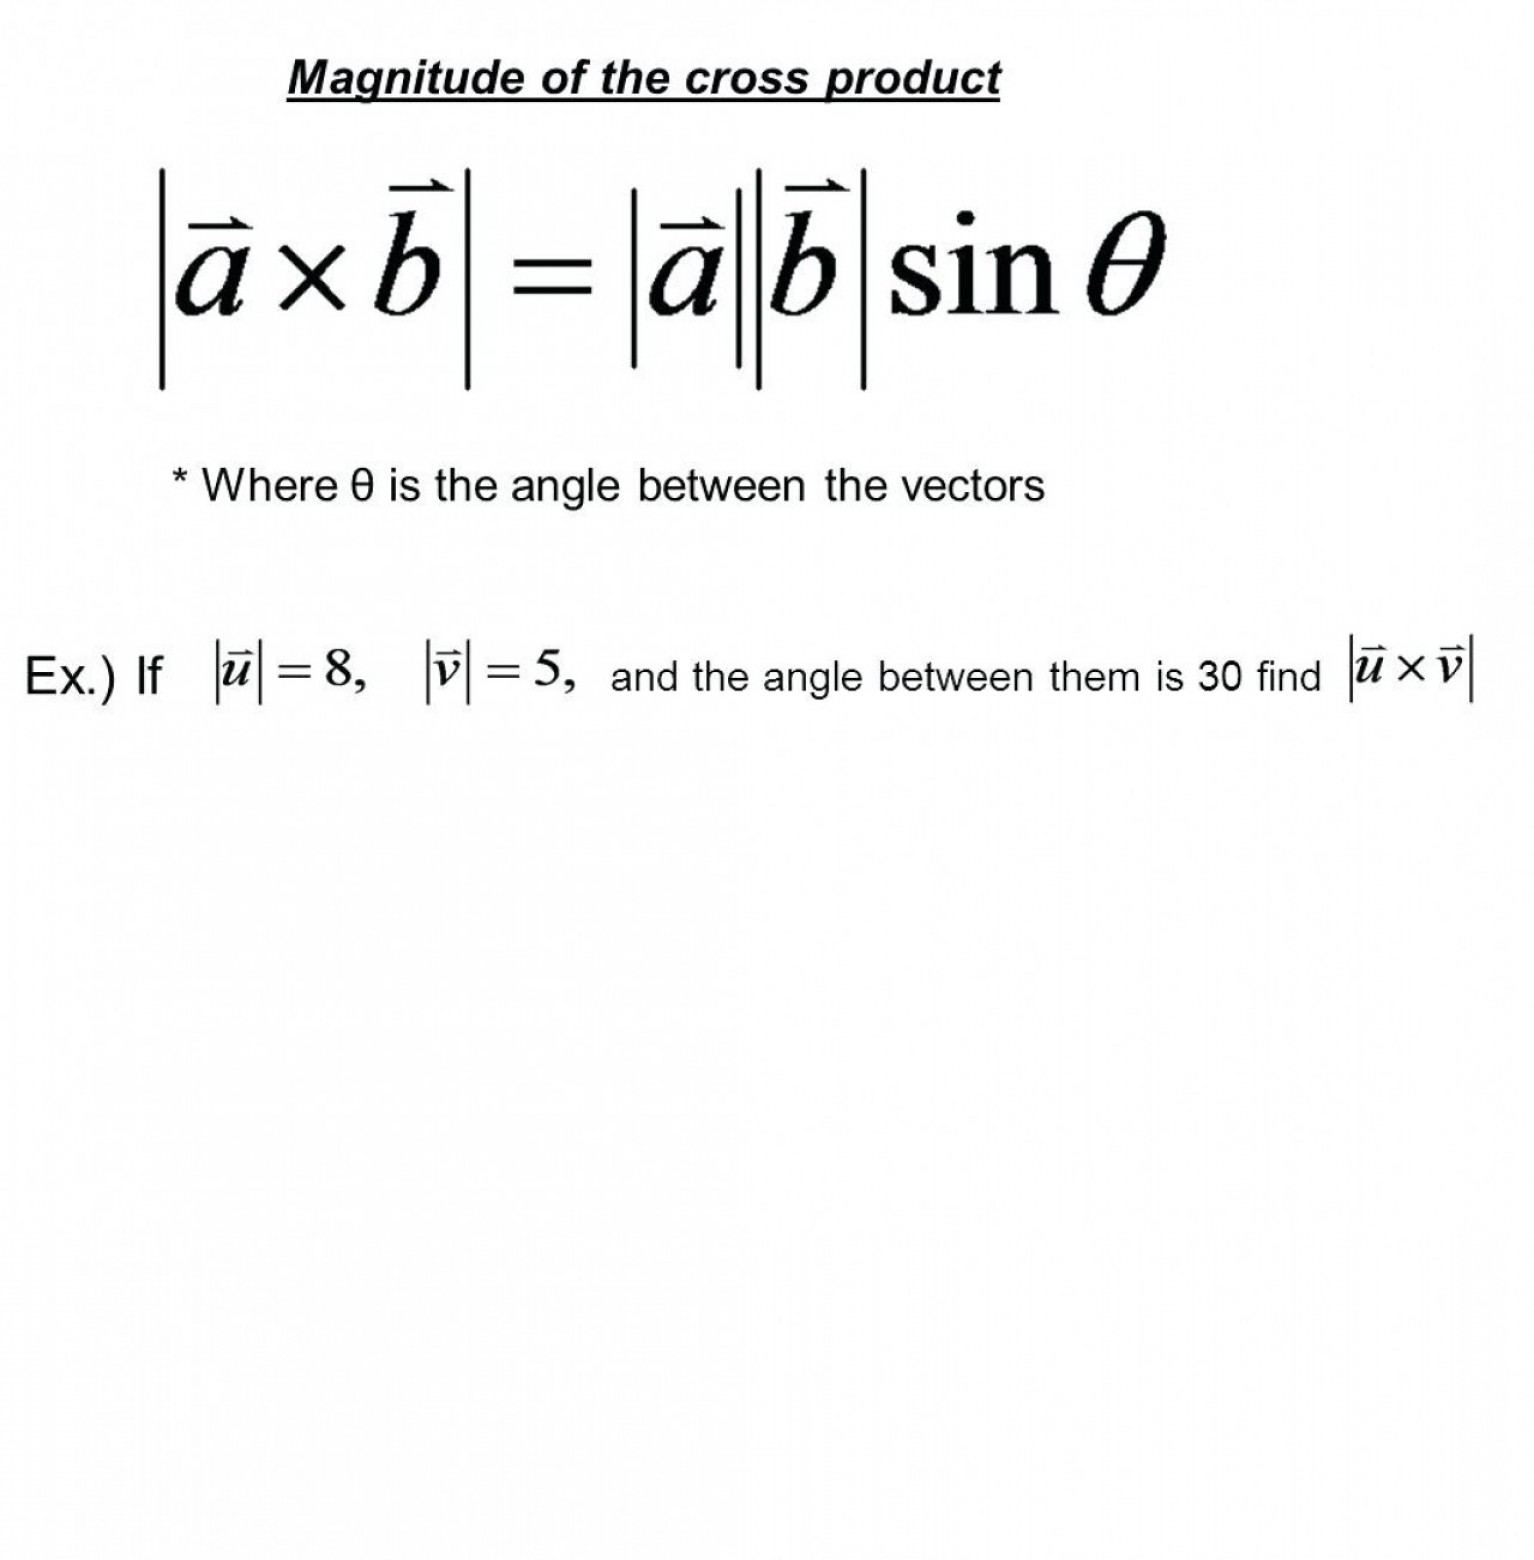 Cross Product Of Vectors 3: Cross Product Of Two Vectors Calculator Math Dot Product Equation Math Playground